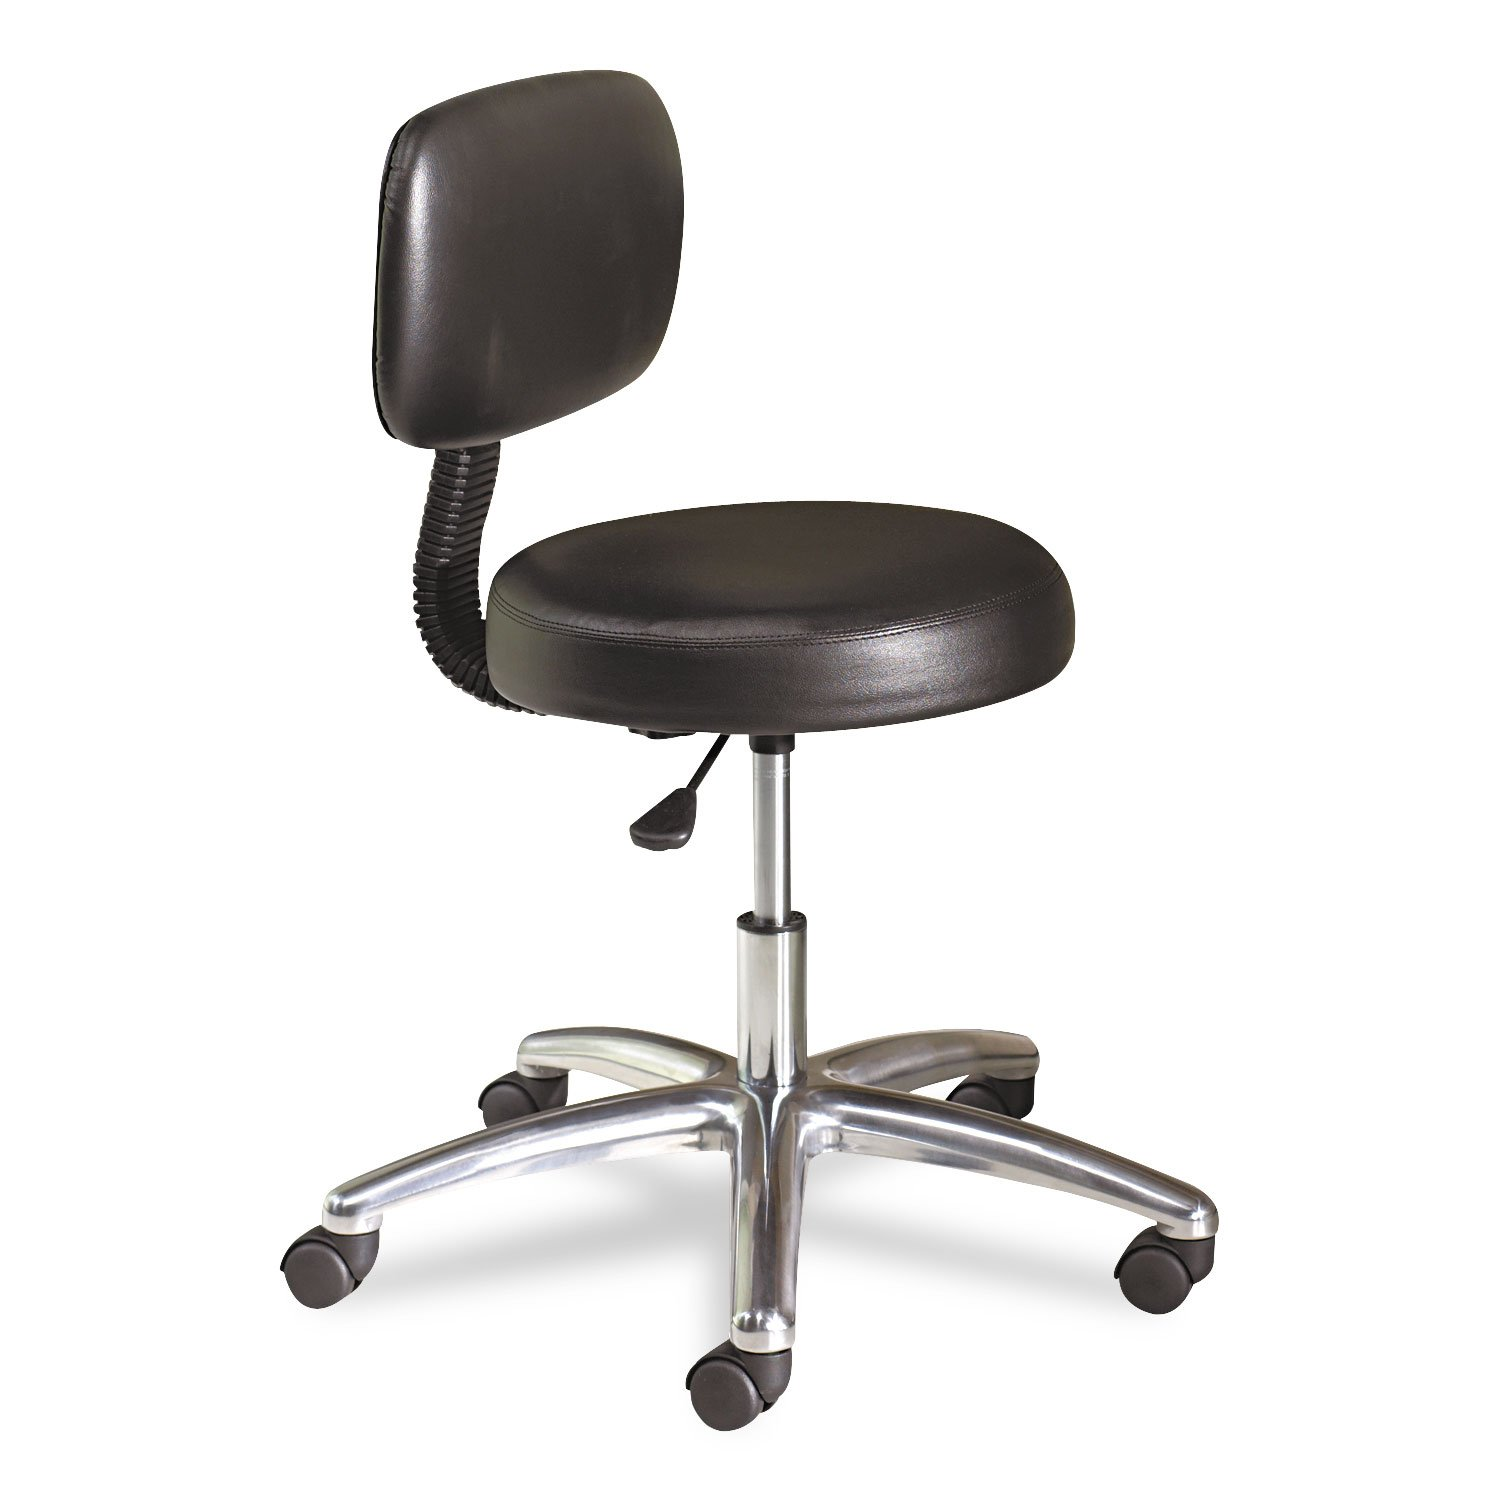 functionality task hon chairs watch features chair adjustments and ignition youtube